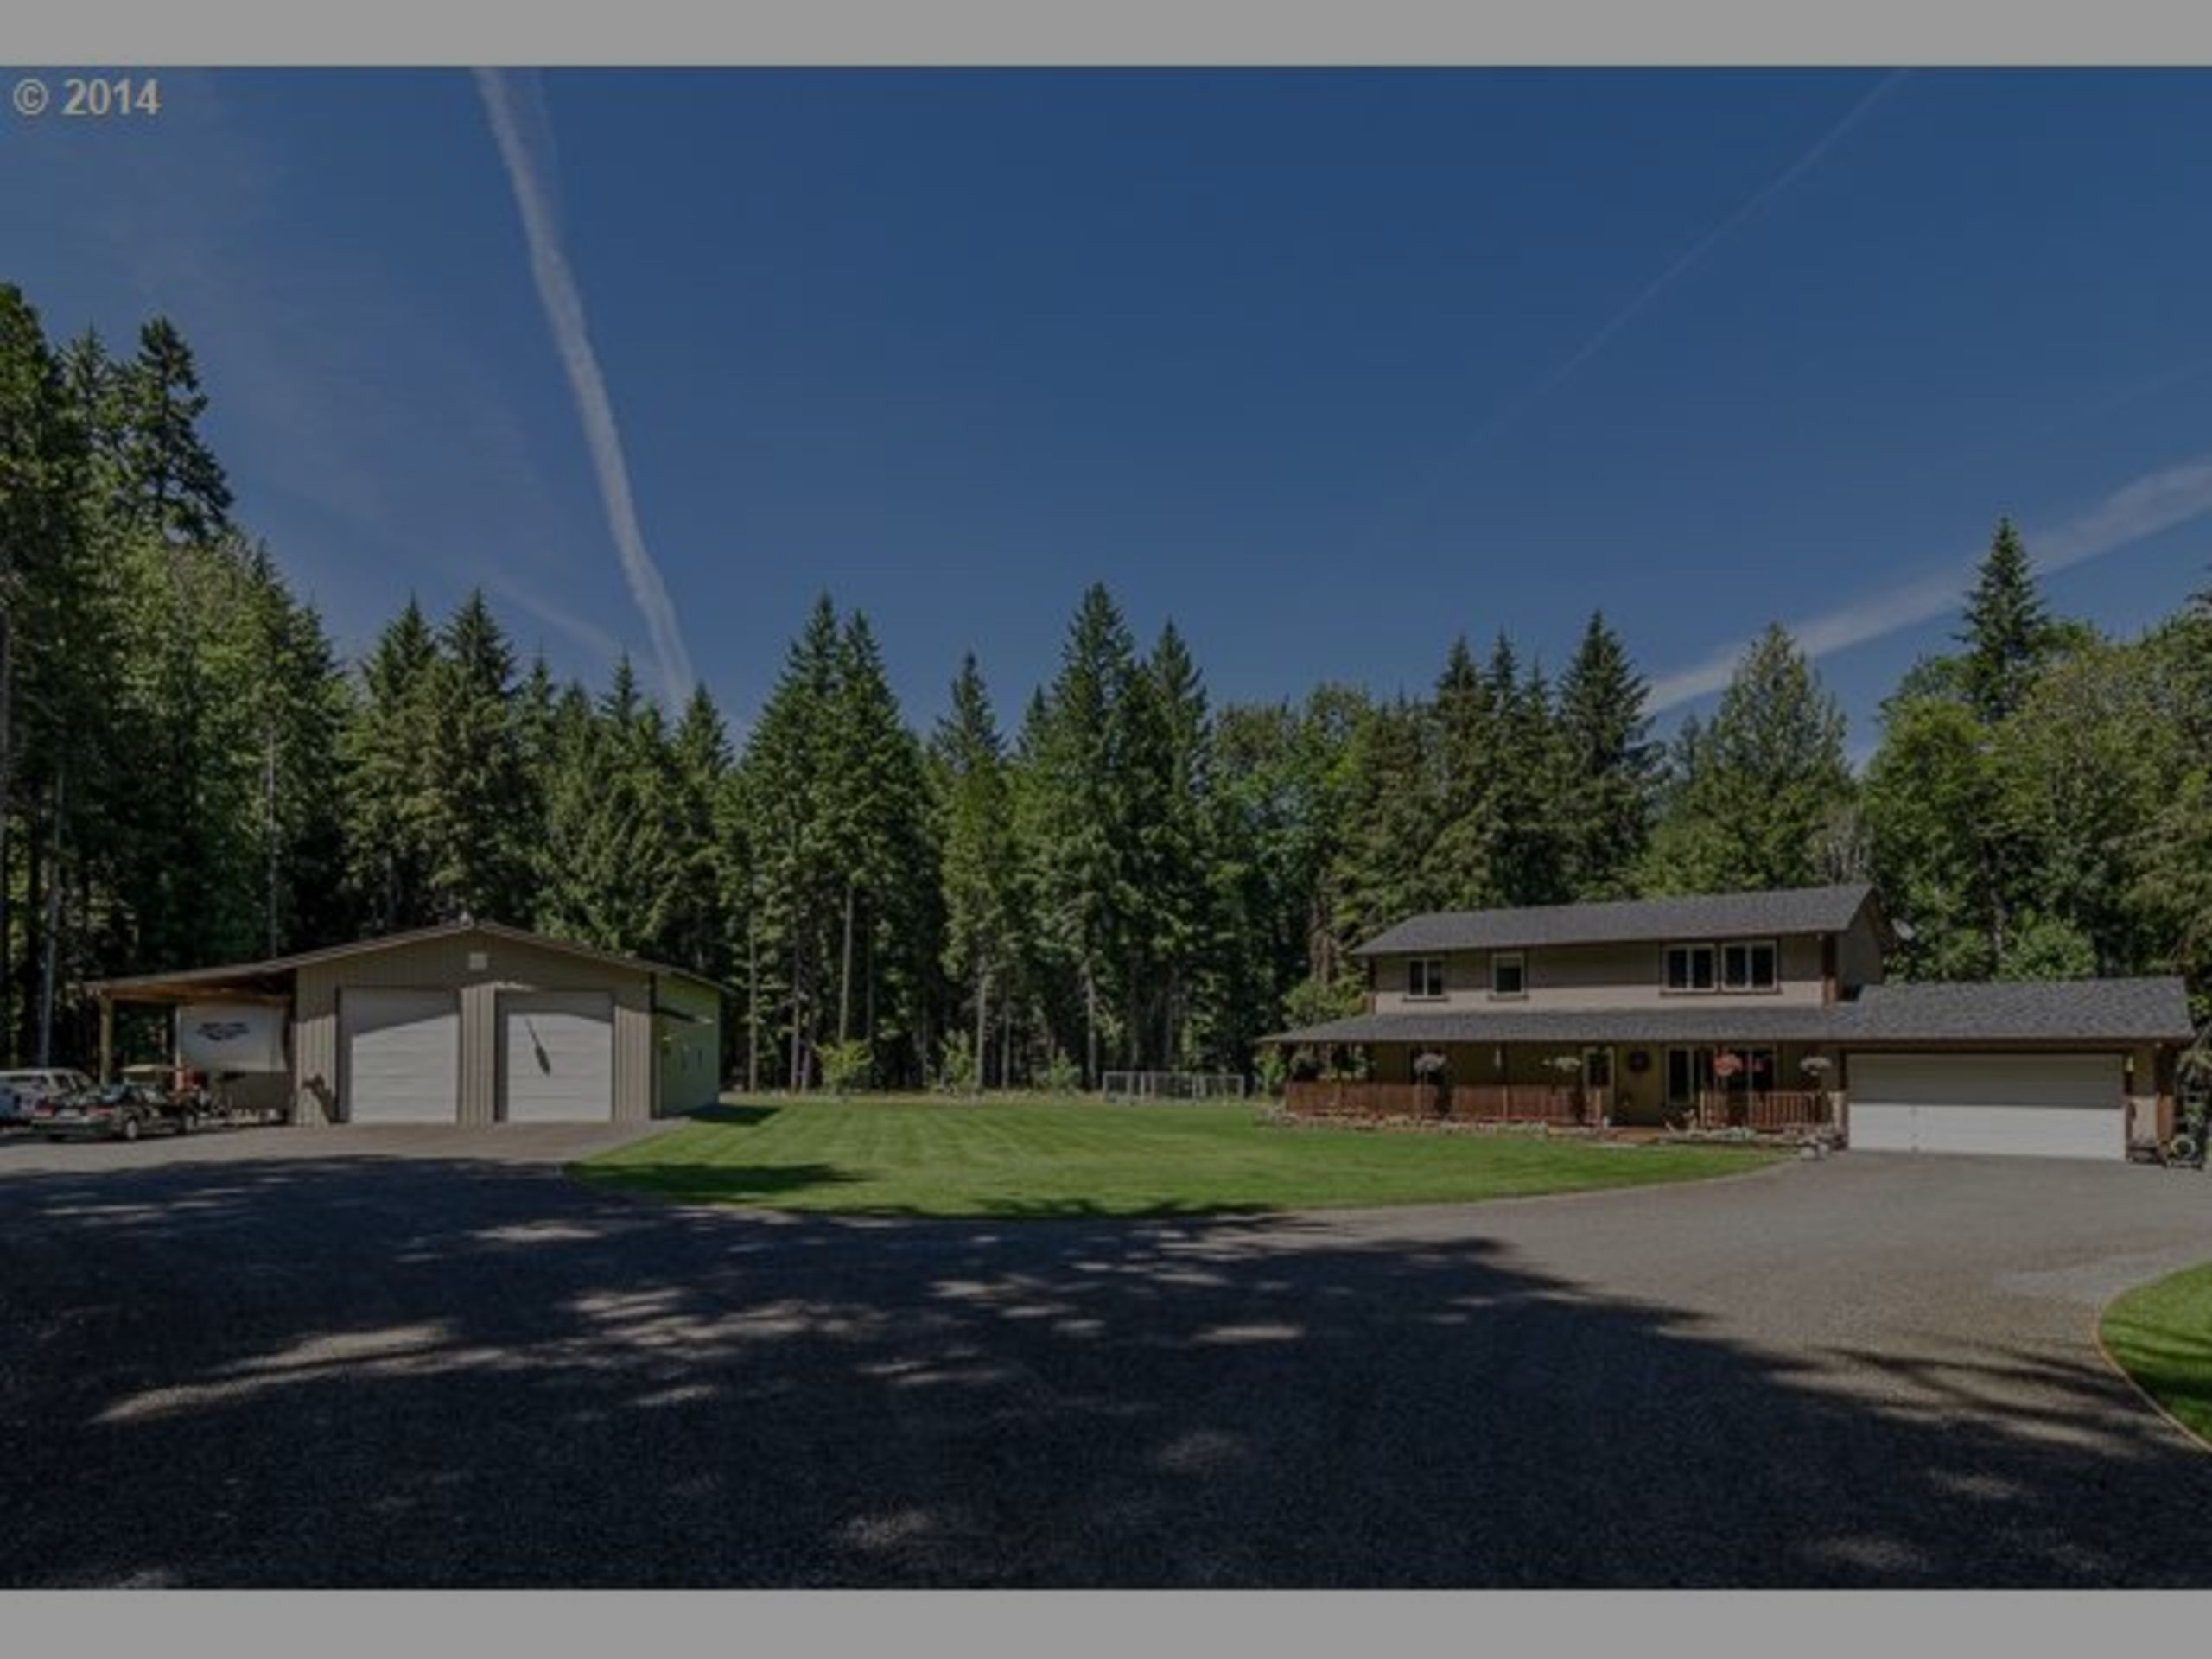 56225 E KING RD, MCKENZIE BRIDGE, OREGON